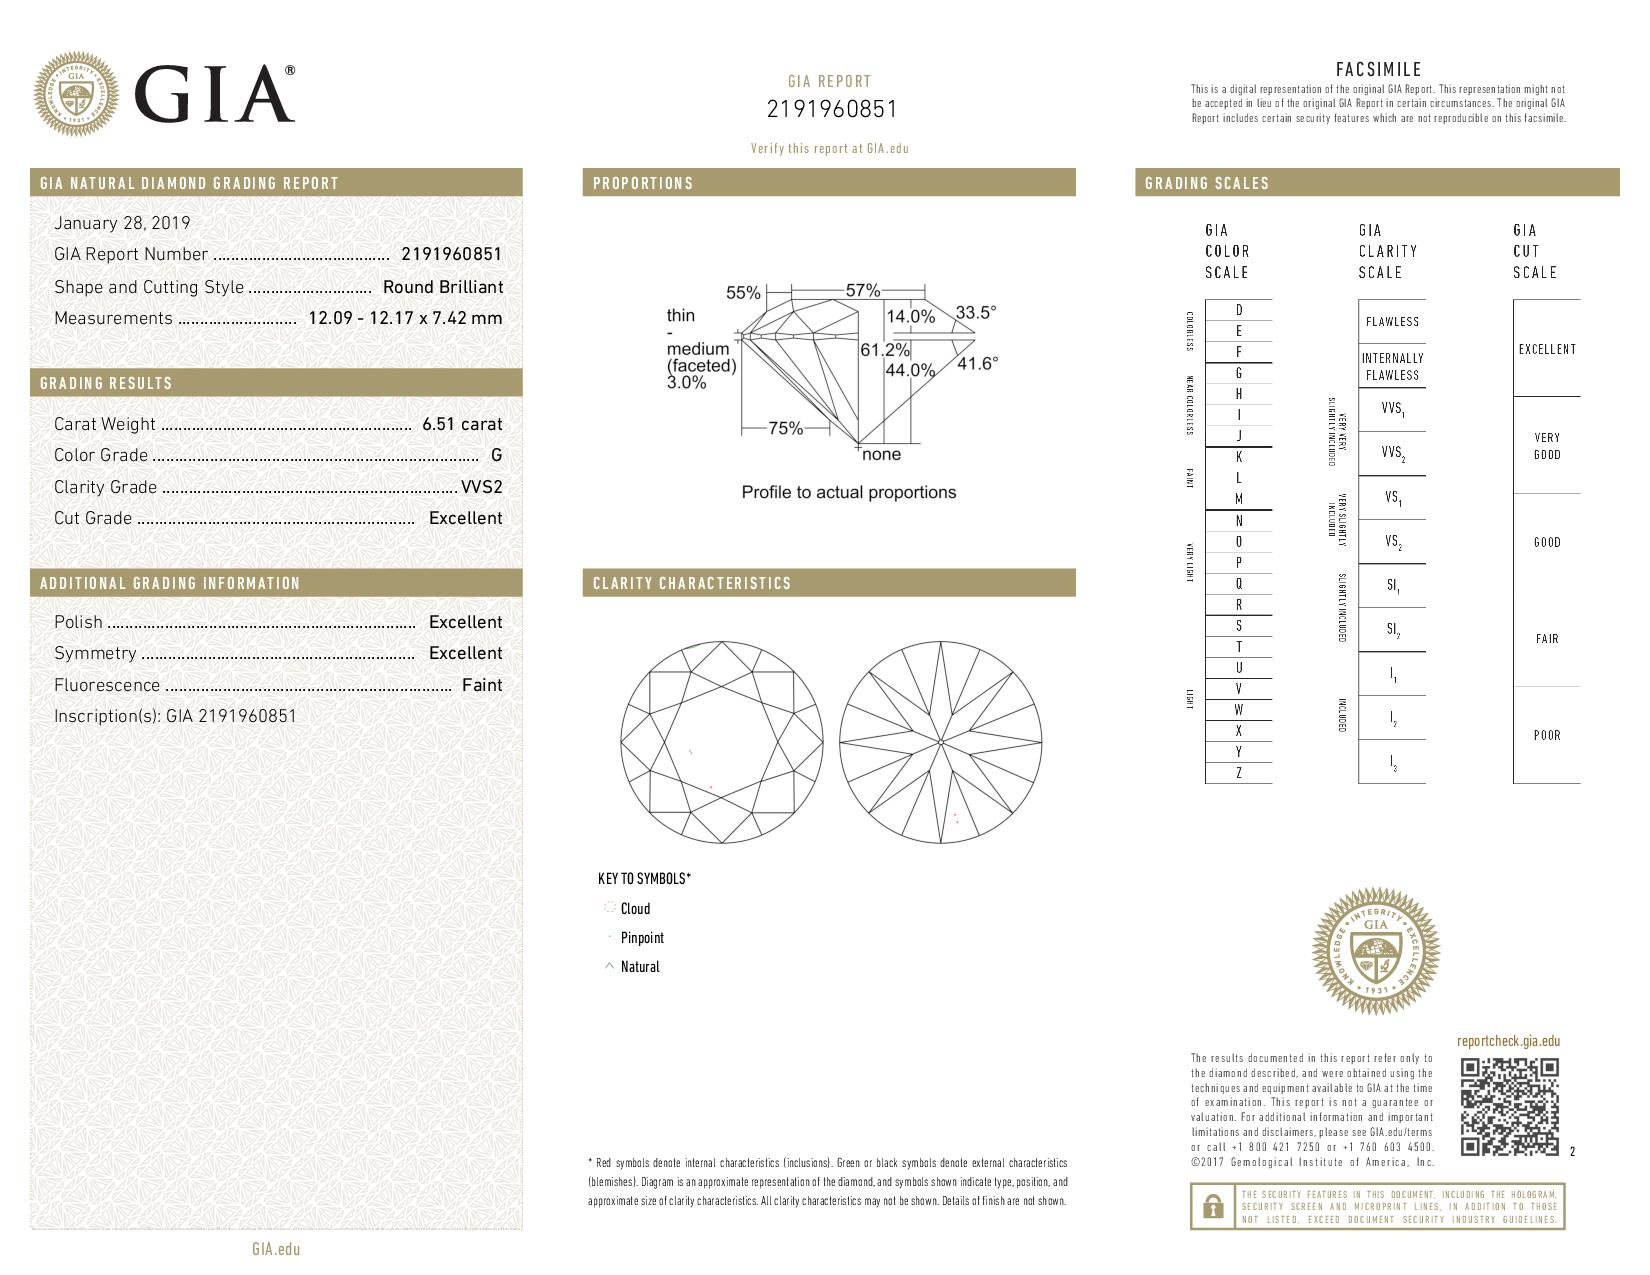 This is a 6.51 carat round shape, G color, VVS2 clarity natural diamond accompanied by a GIA grading report.